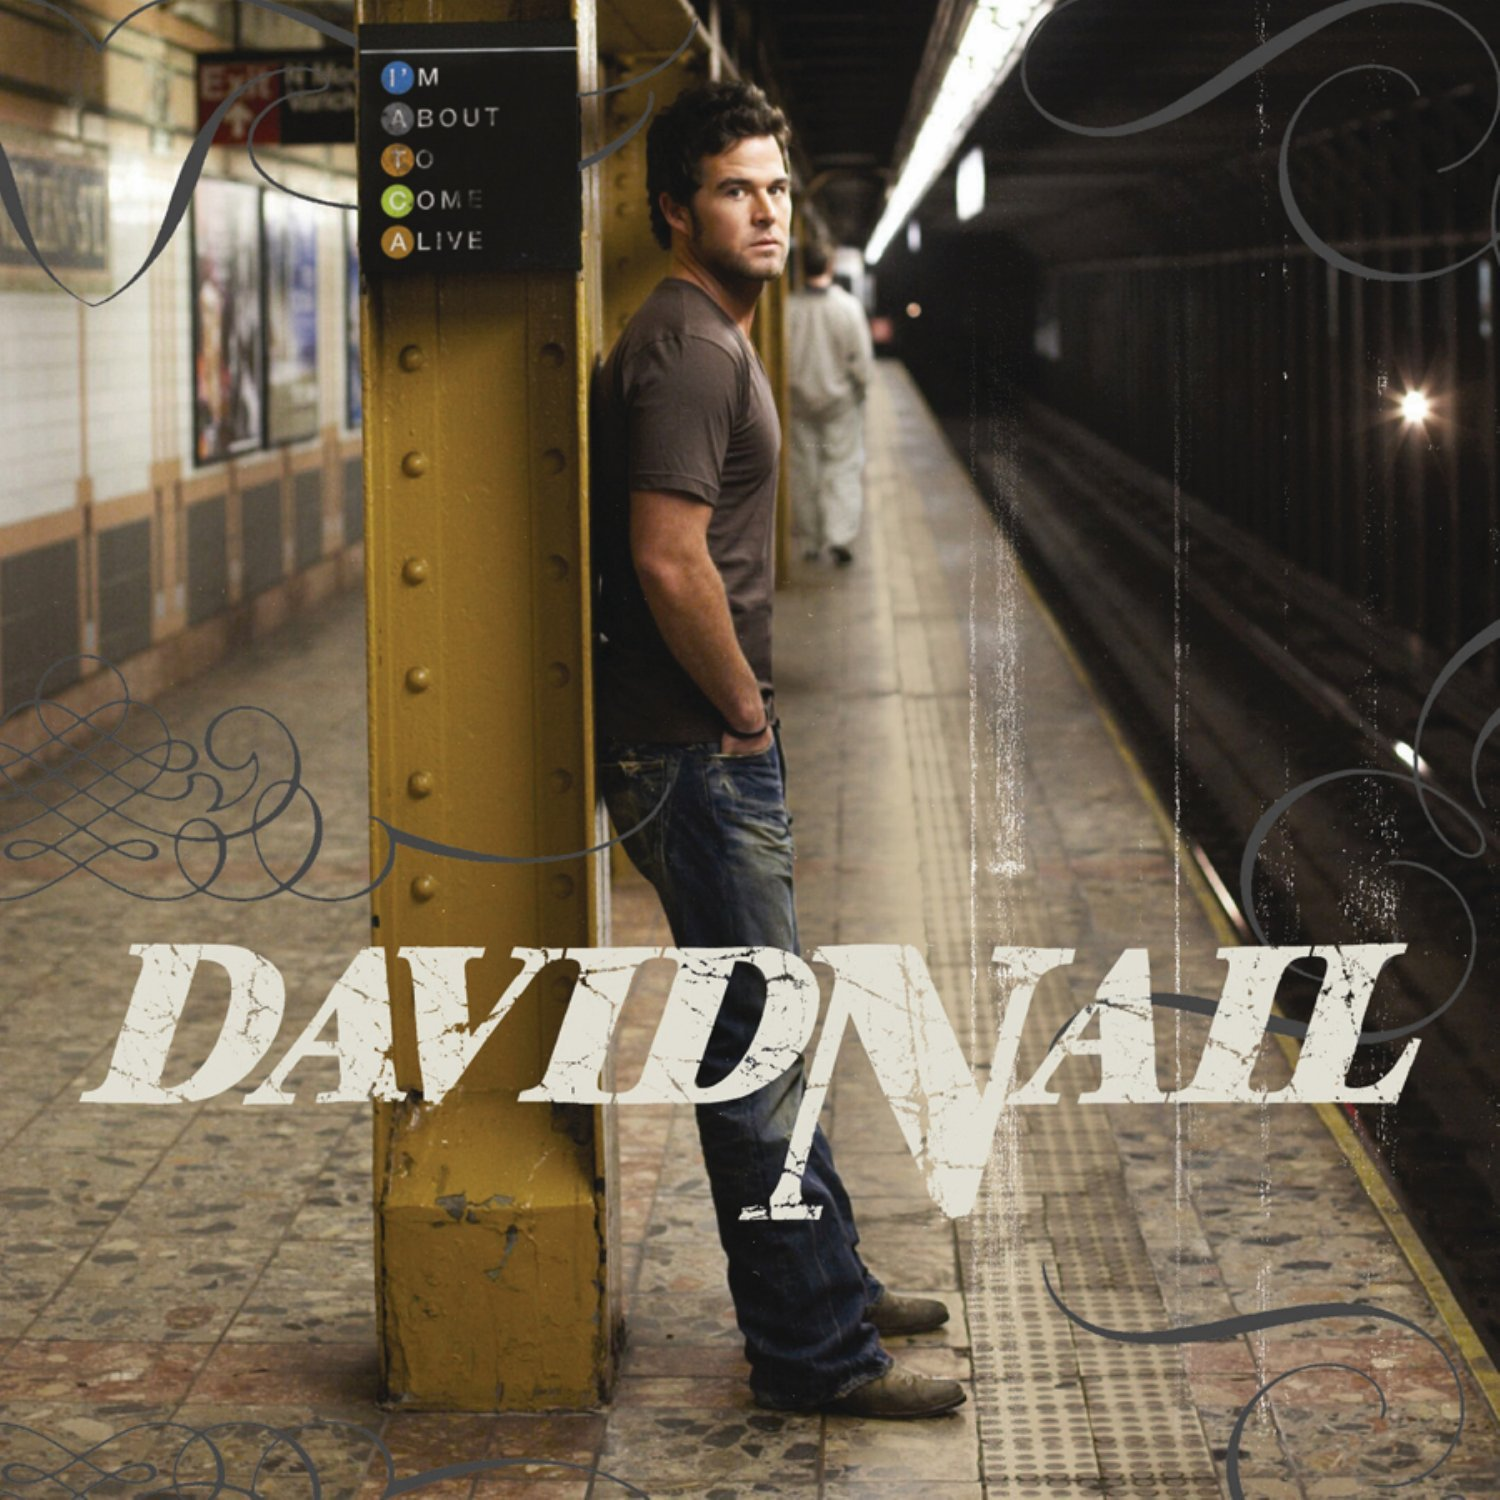 David Nail - I\'m About To Come Alive - Amazon.com Music